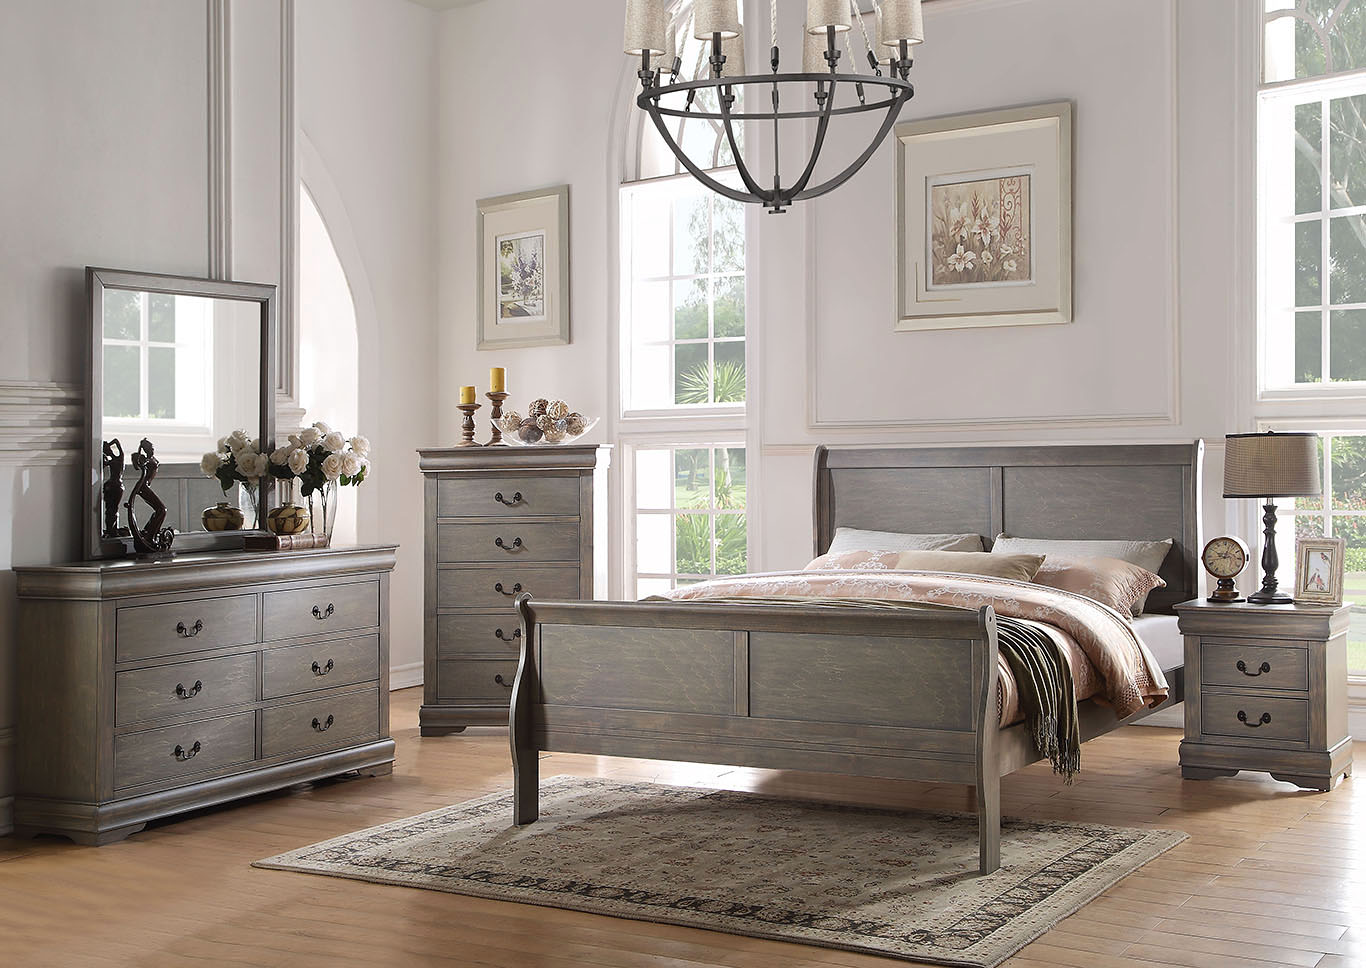 Louis Philippe Antique Gray Twin Sleigh Bed w/Dresser and Mirror,Acme